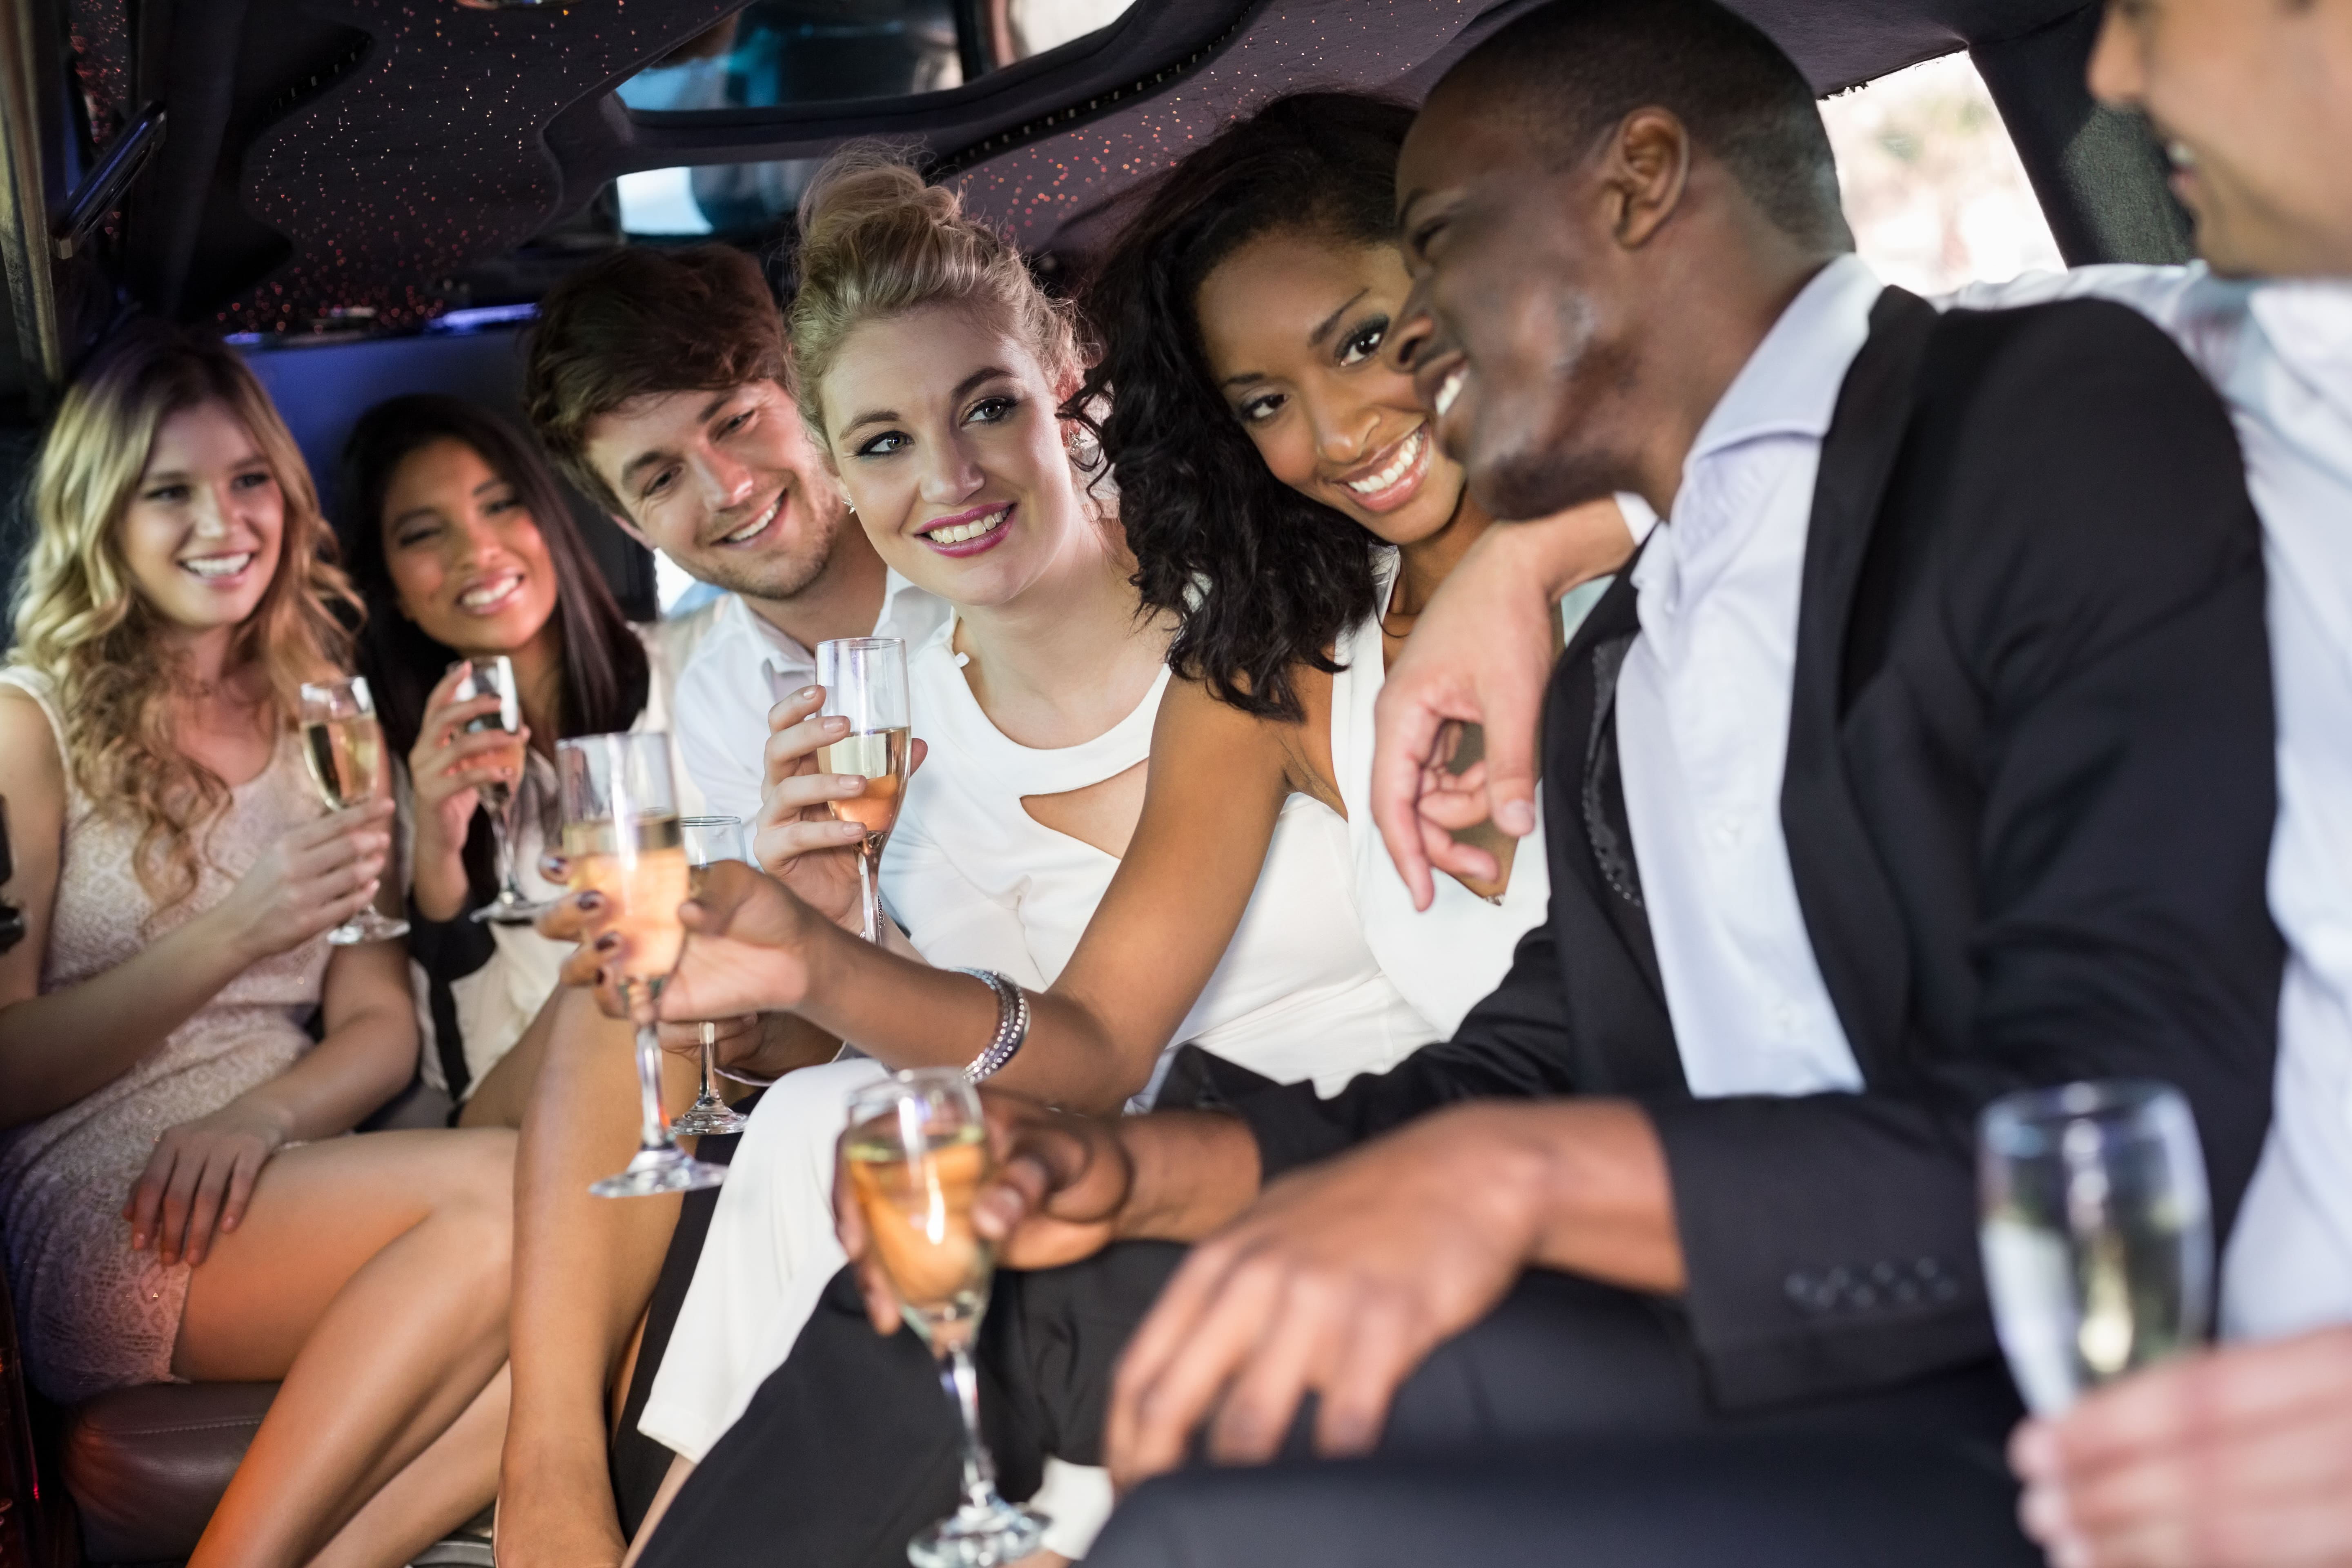 Friends in an SUV Limo